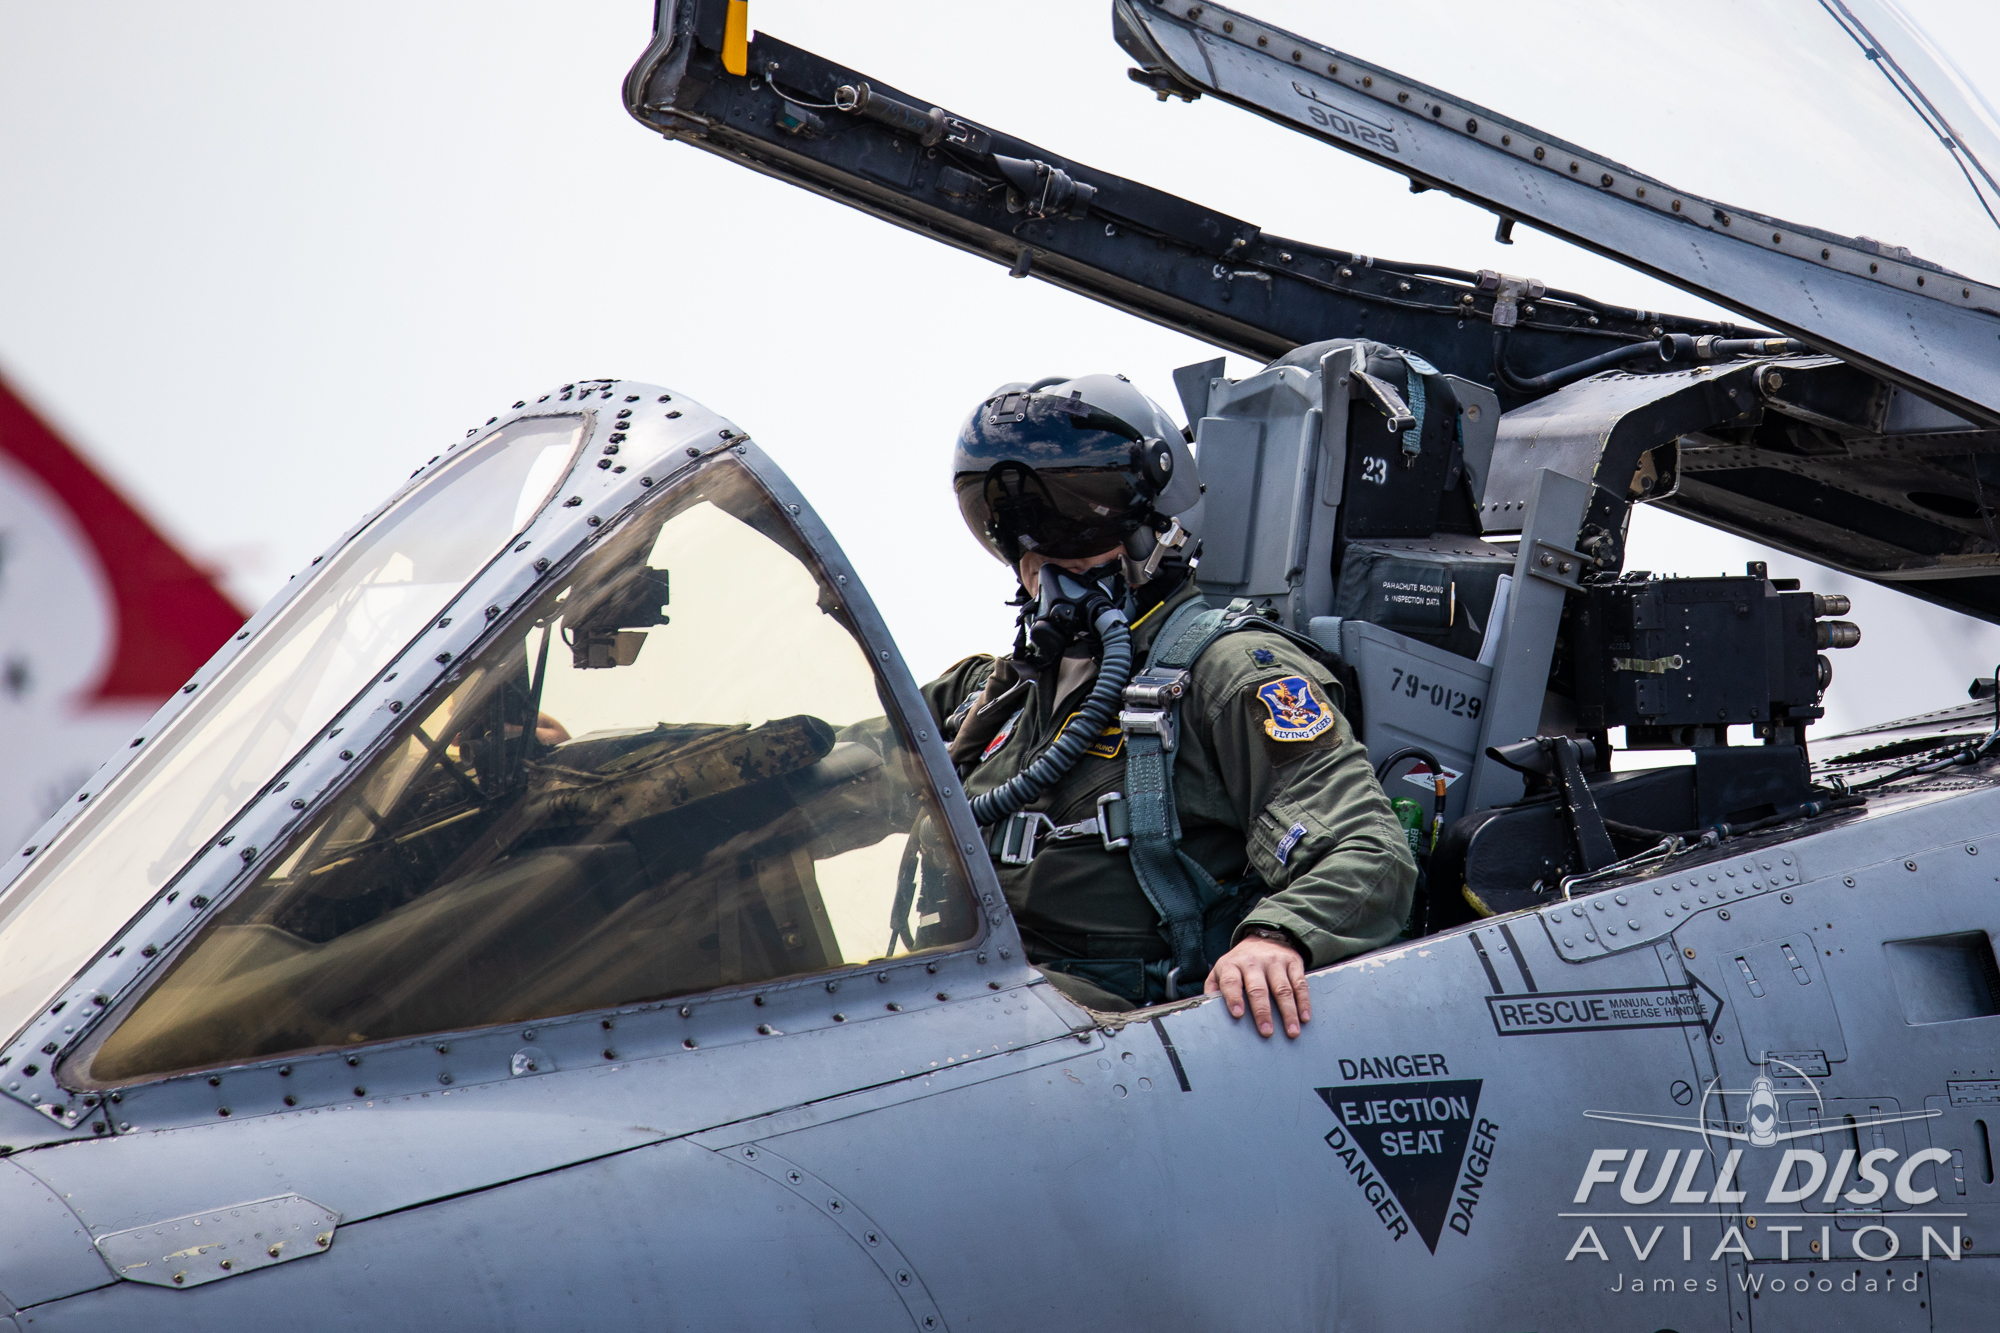 WingsOverWayne_FullDiscAviation_JamesWoodard__-April 28, 2019-07-3.jpg